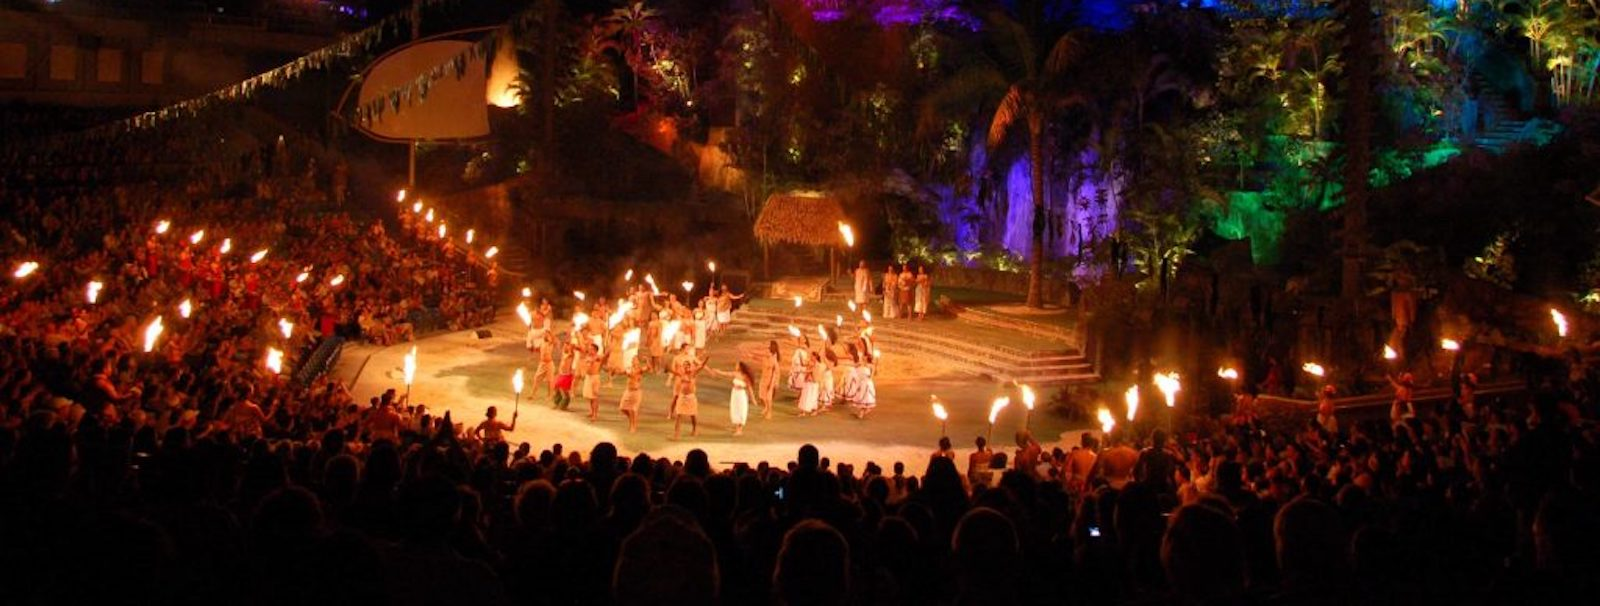 4 Things You'll Love About the Polynesian Cultural Center in Oahu